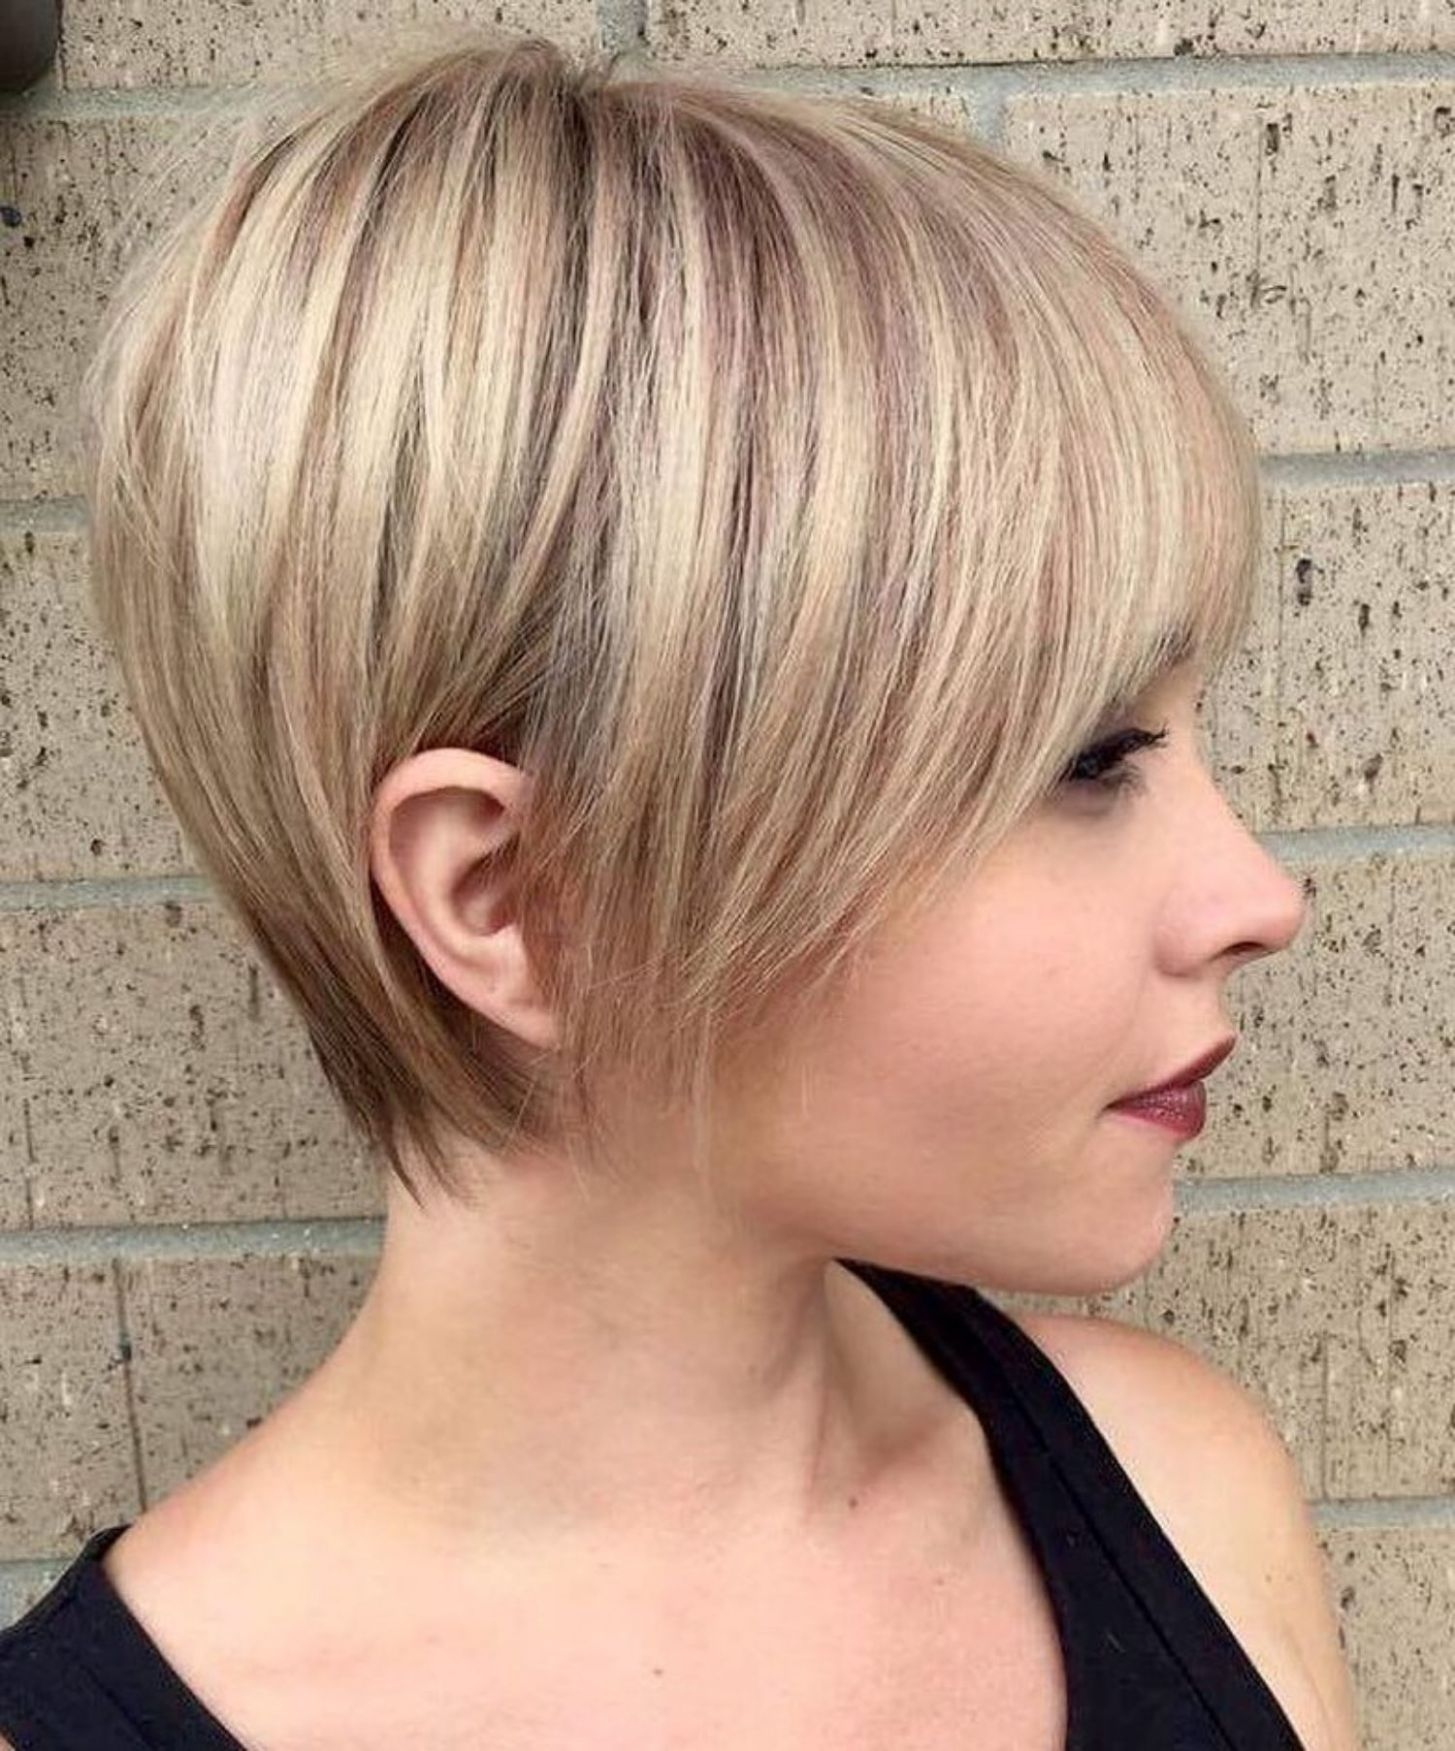 50 Super Cute Looks With Short Hairstyles For Round Faces Longer Pixie Haircut Short Hair With Layers Short Choppy Hair